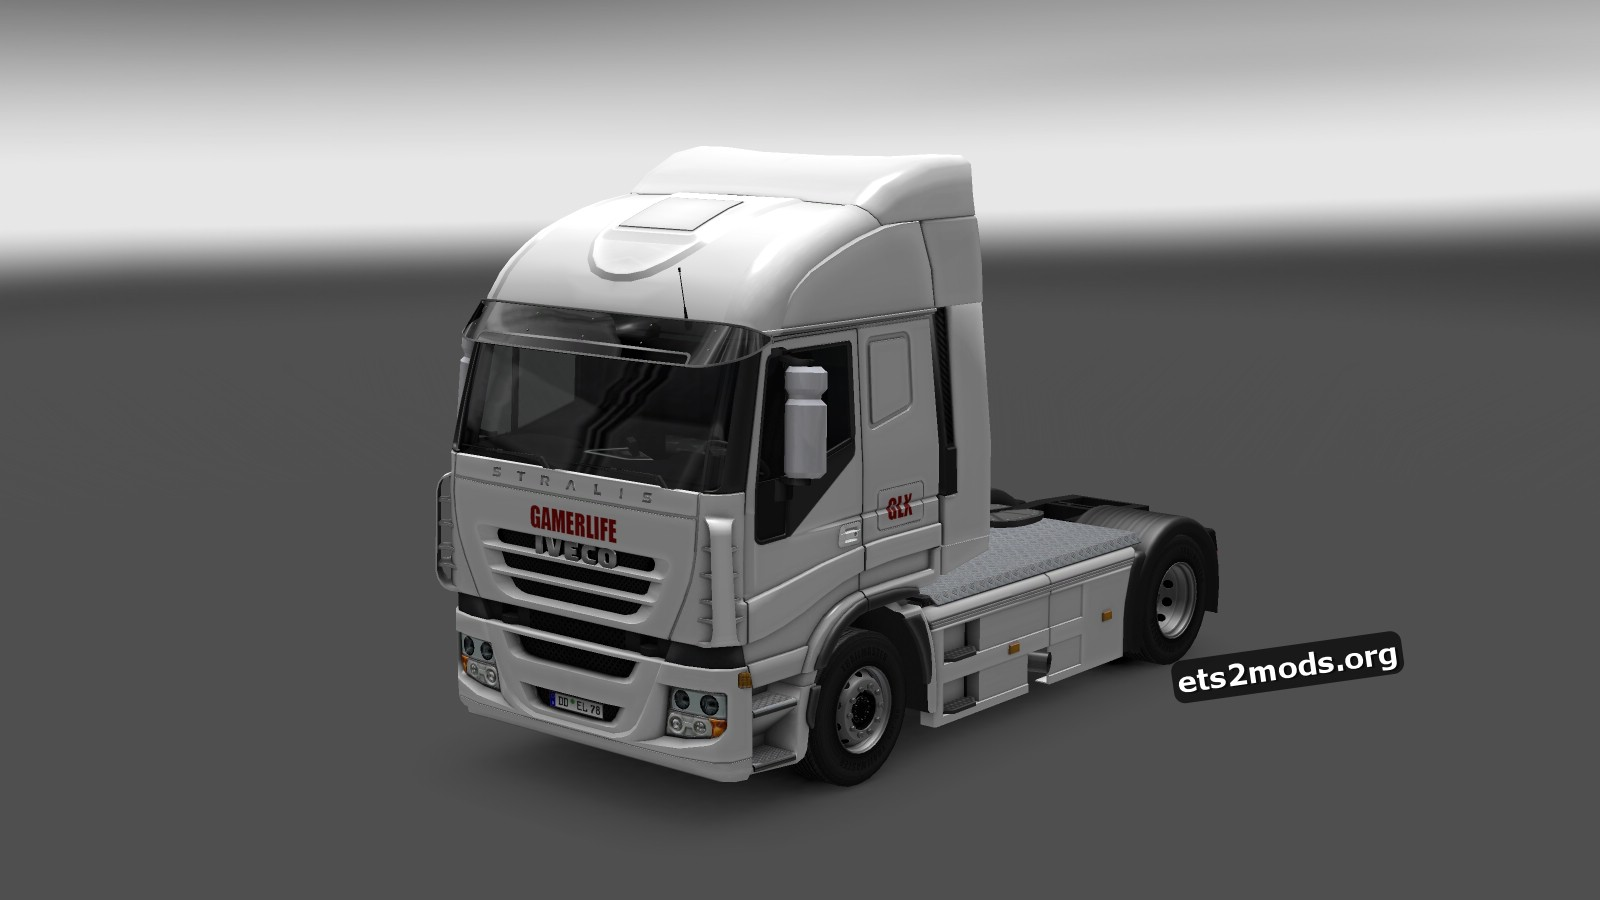 Gamerlife Skin for Iveco Stralis